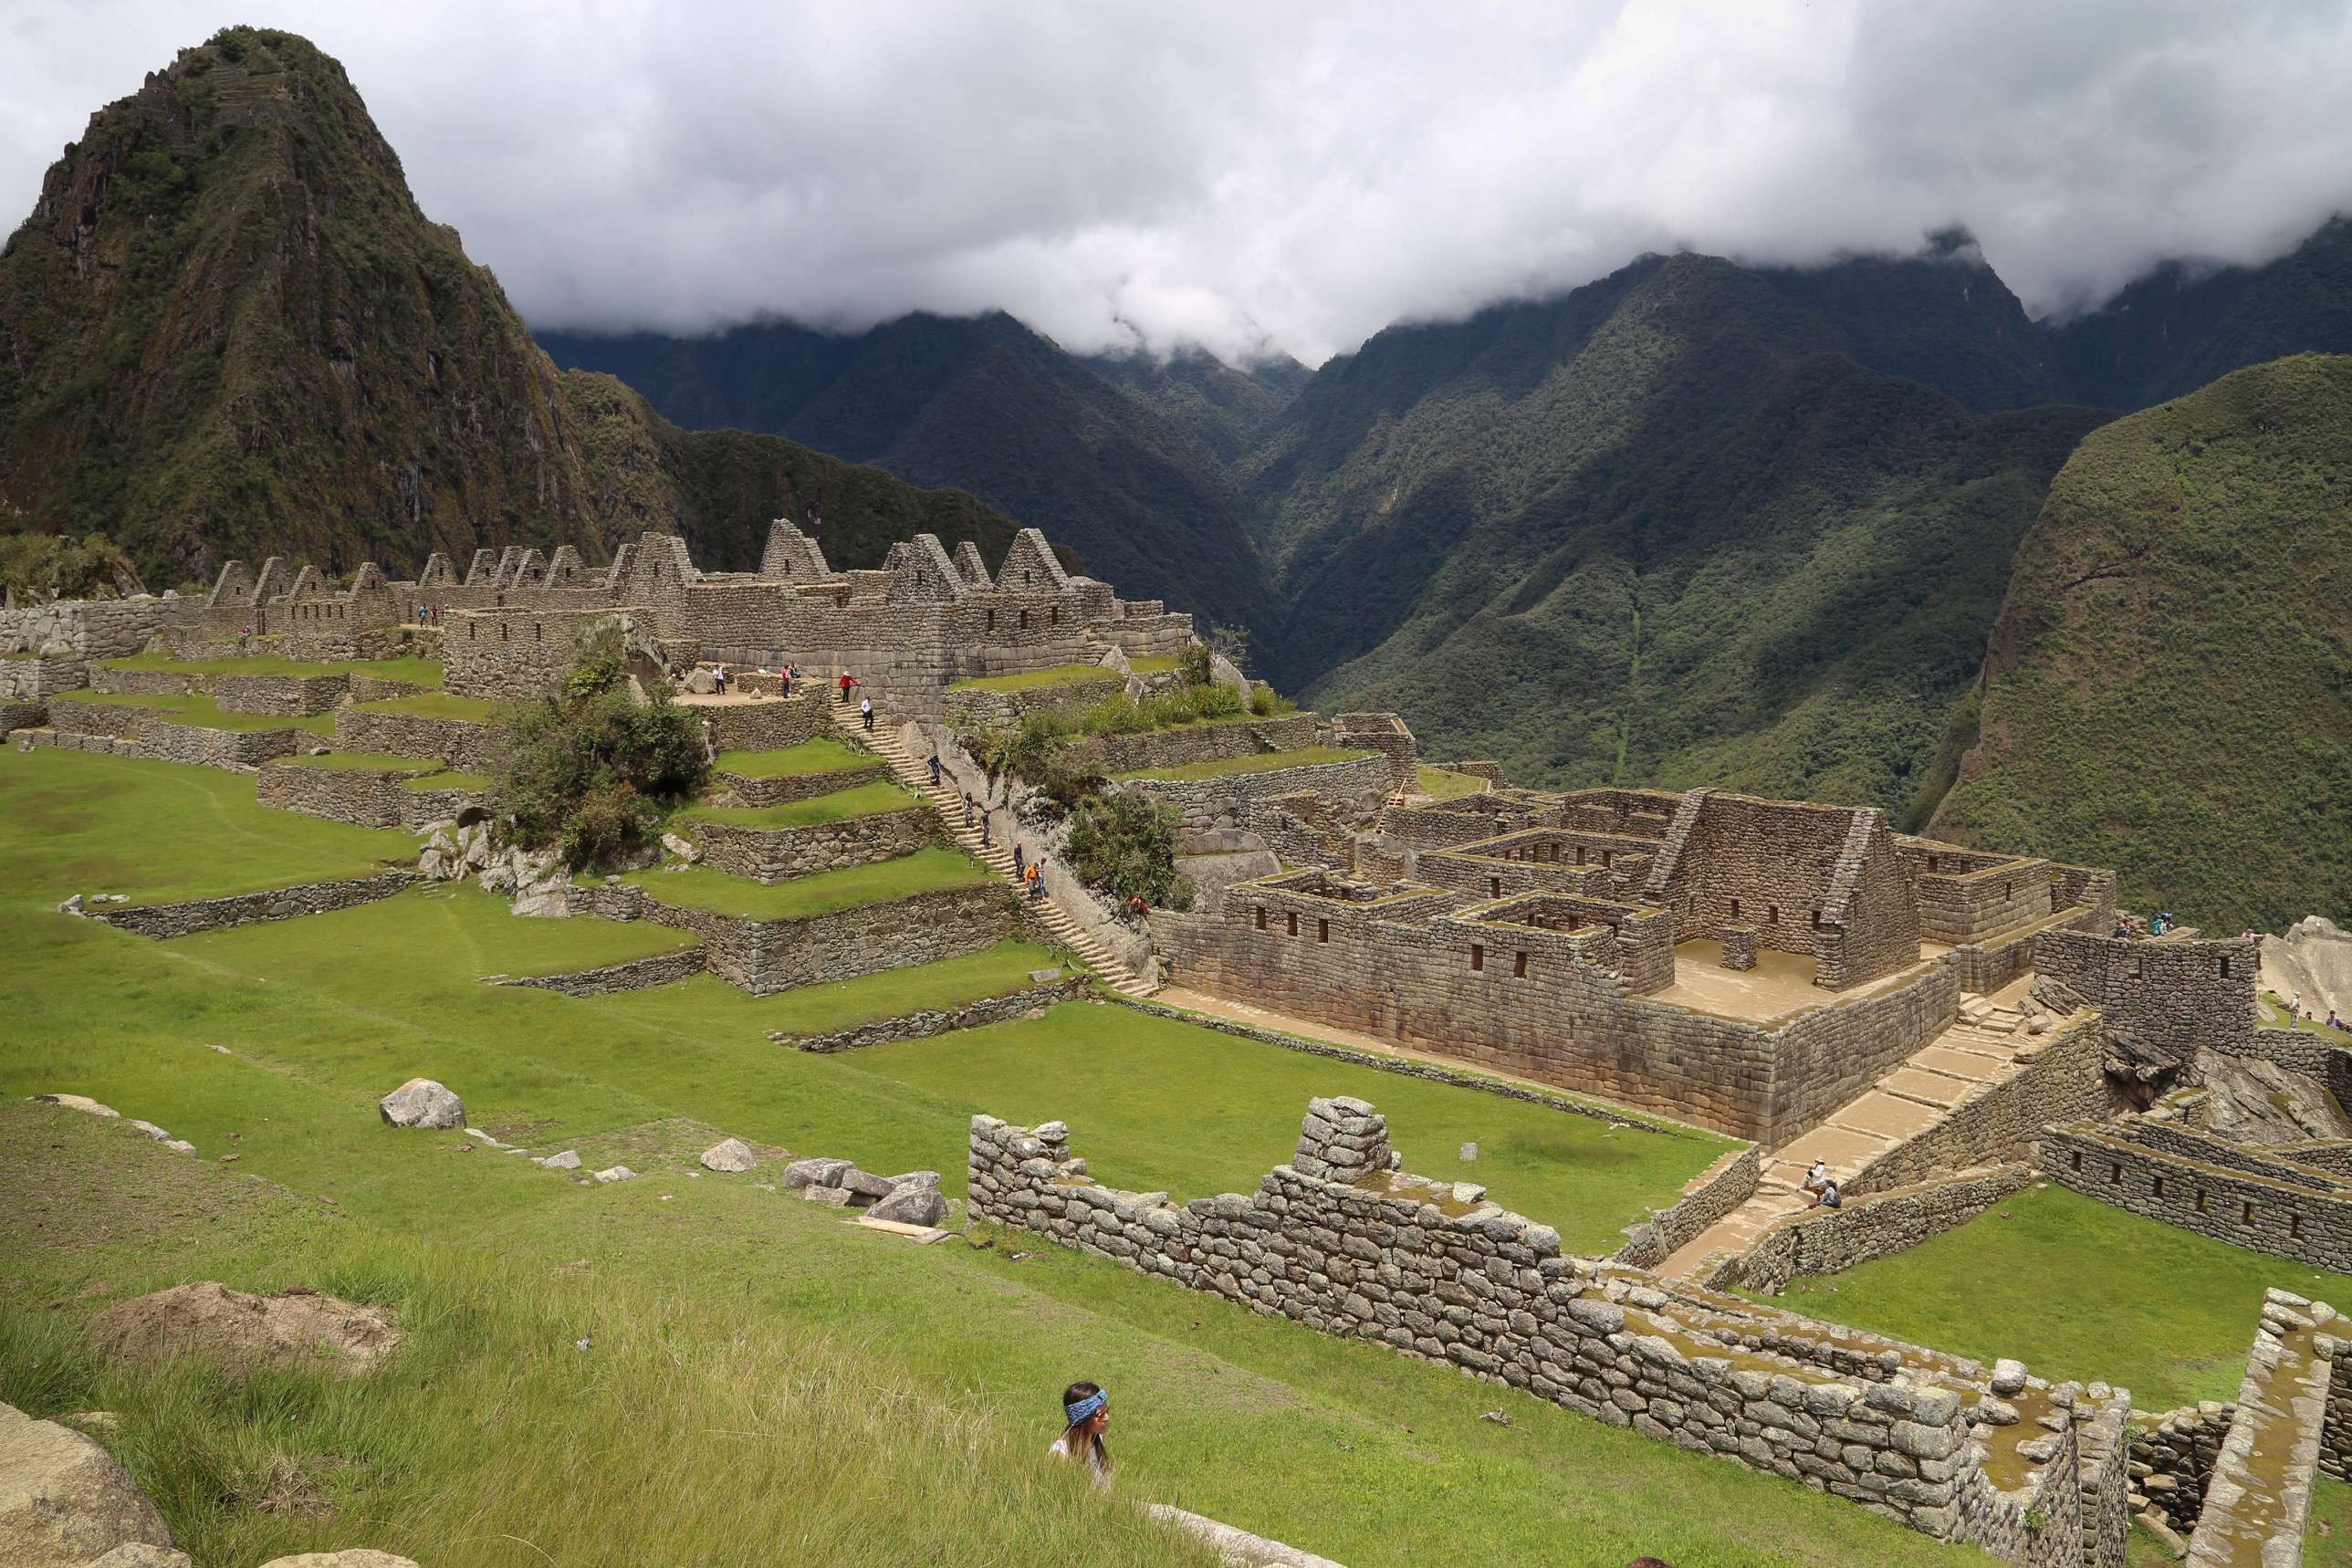 The scale of Machu Picchu is breathtaking and given its age, it is an engineering marvel.